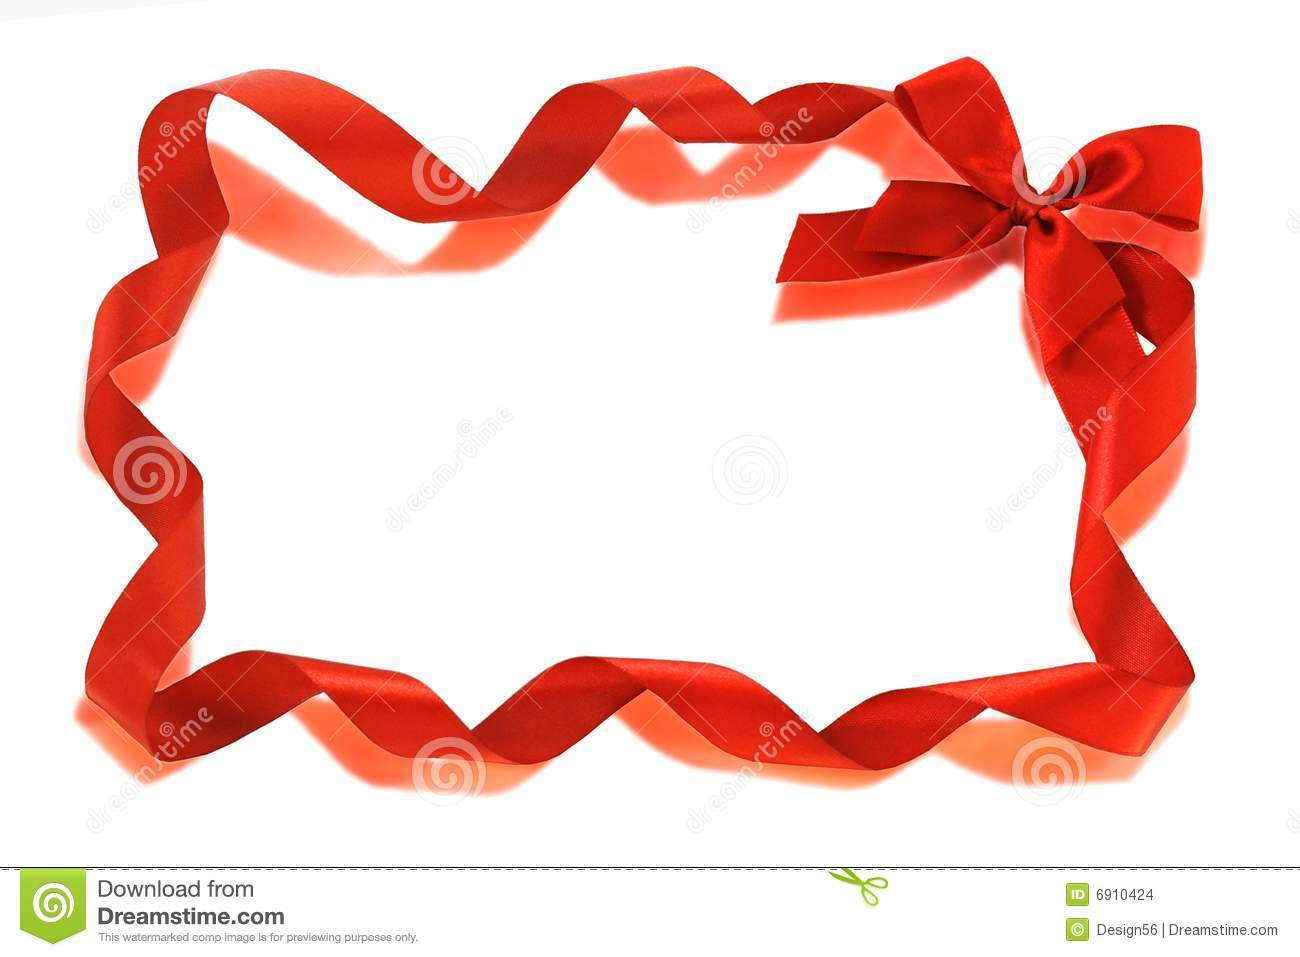 Red Bow ribbons border isolated on white with copy space.